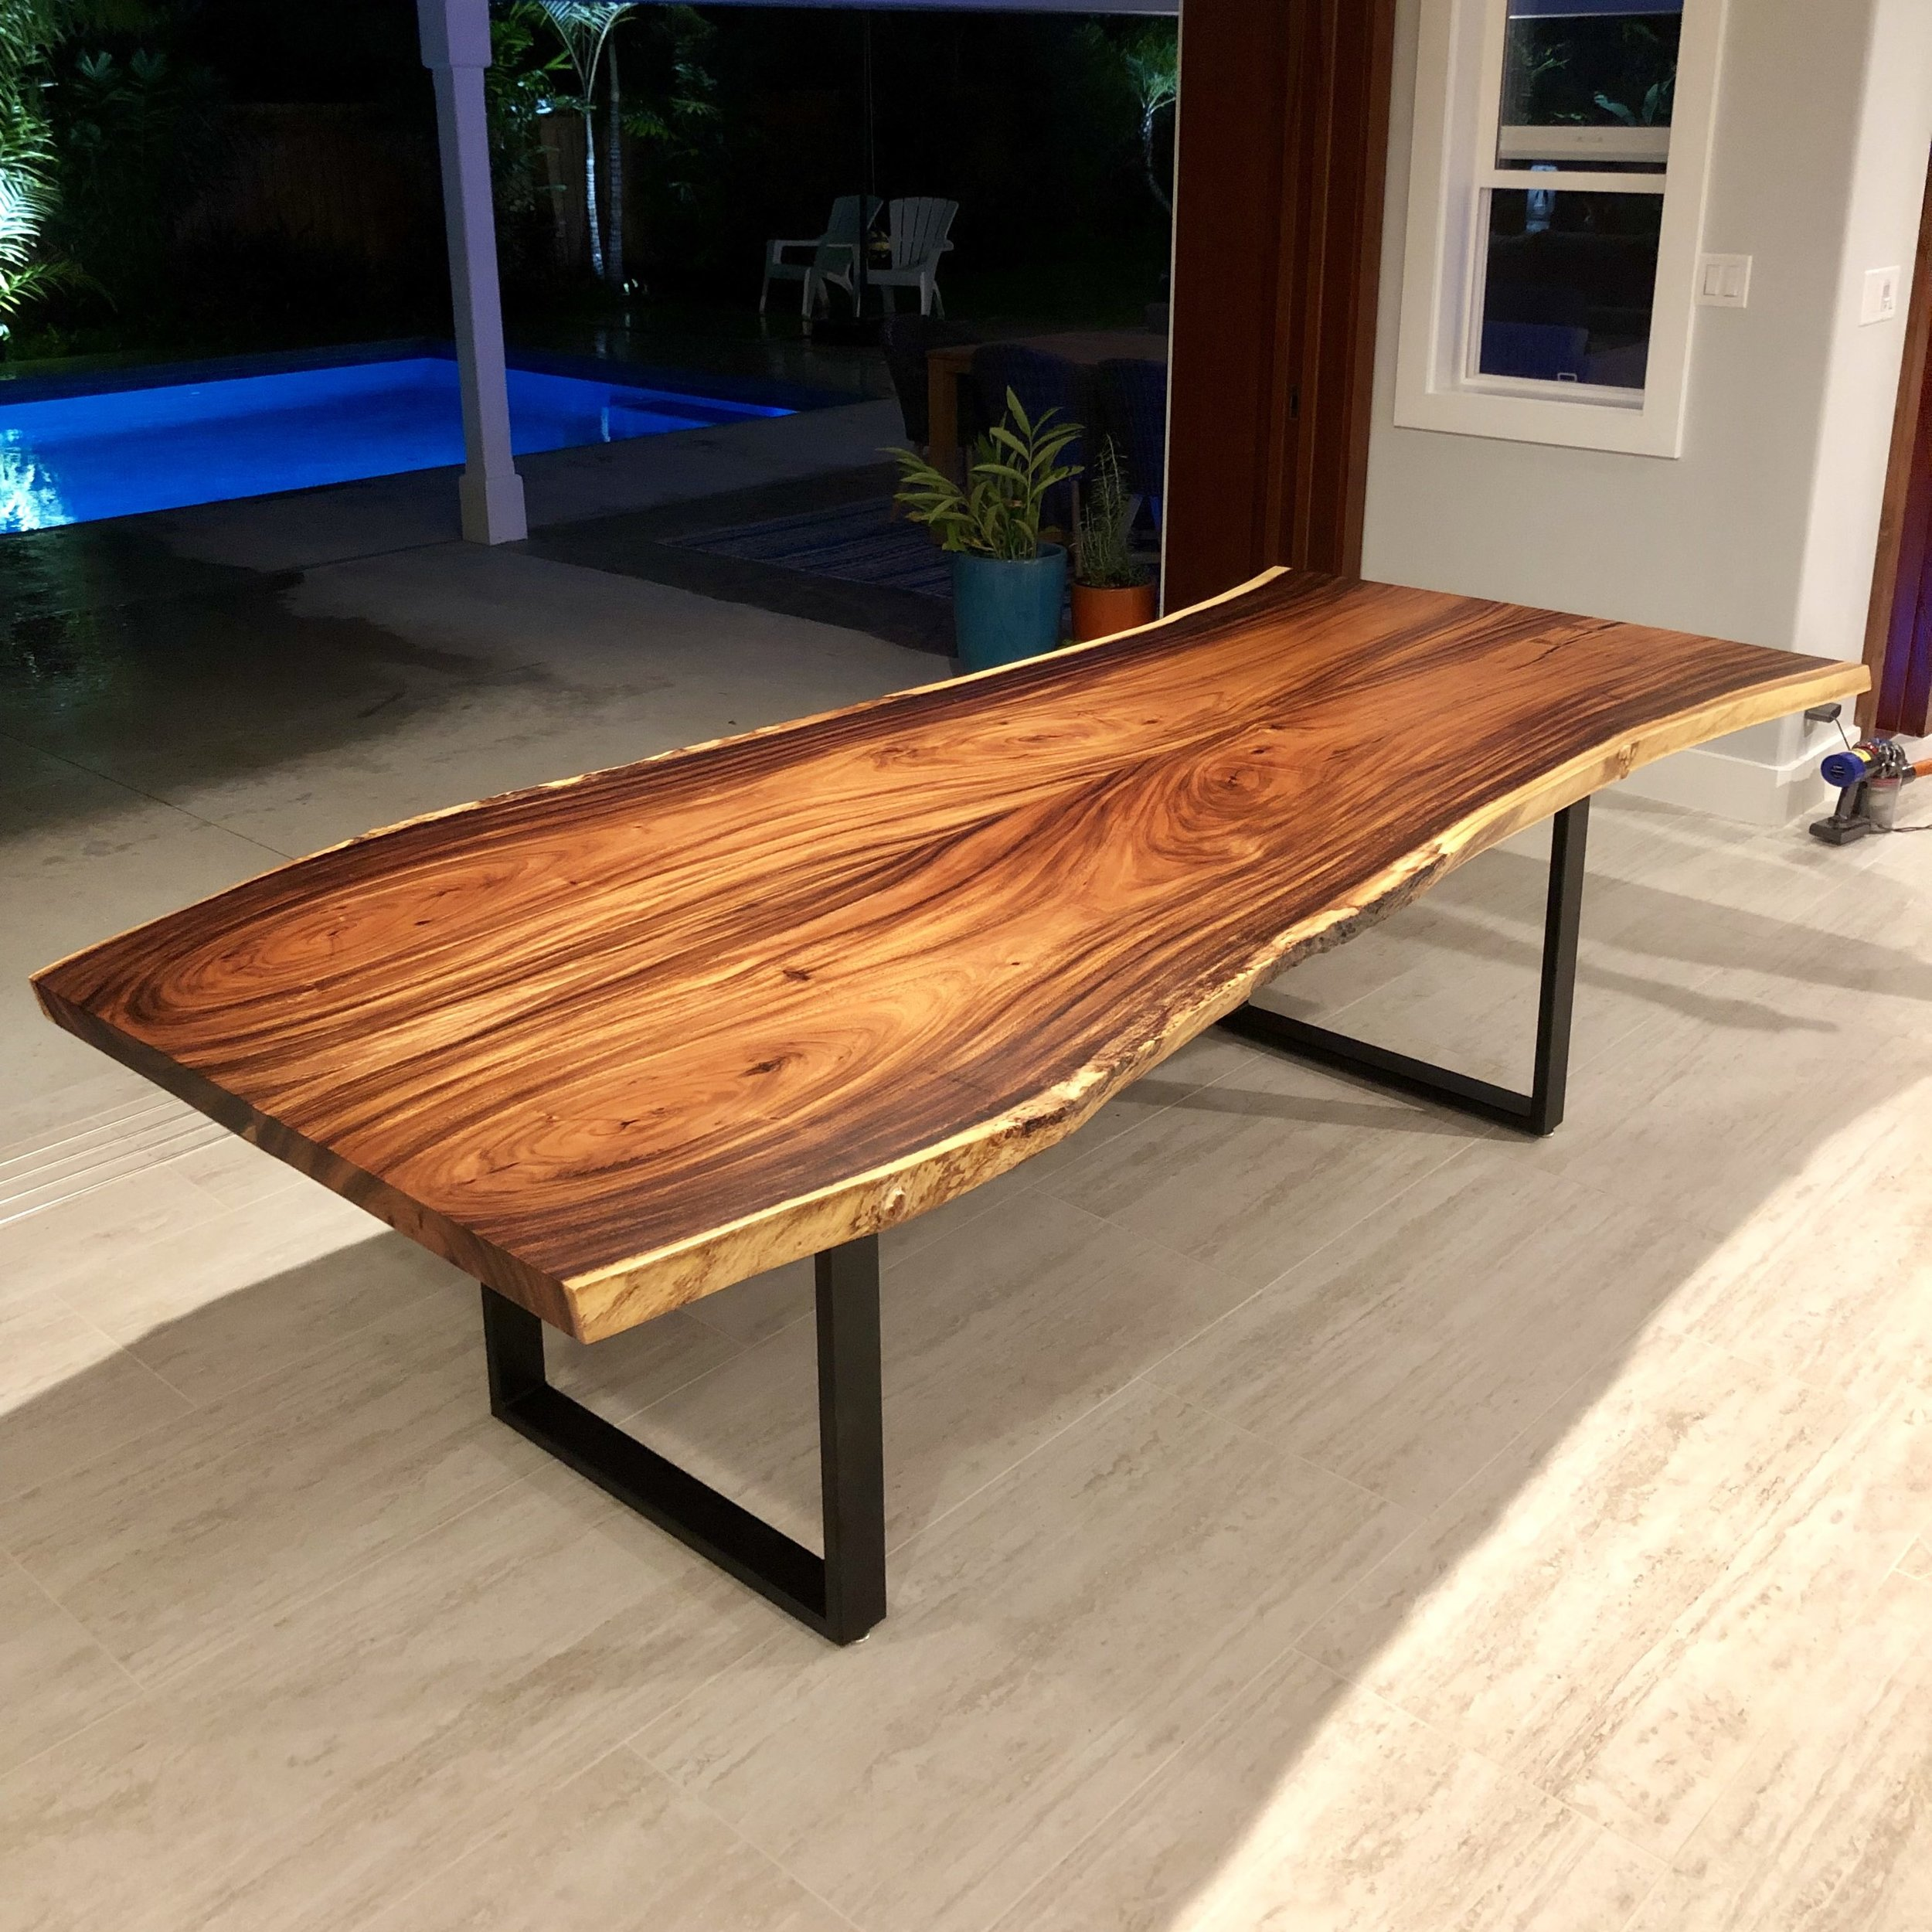 Monkeypod dining table. Bookmatched slabs from a tree in Manoa Valley, Oahu. Steel table legs also made in the USA.